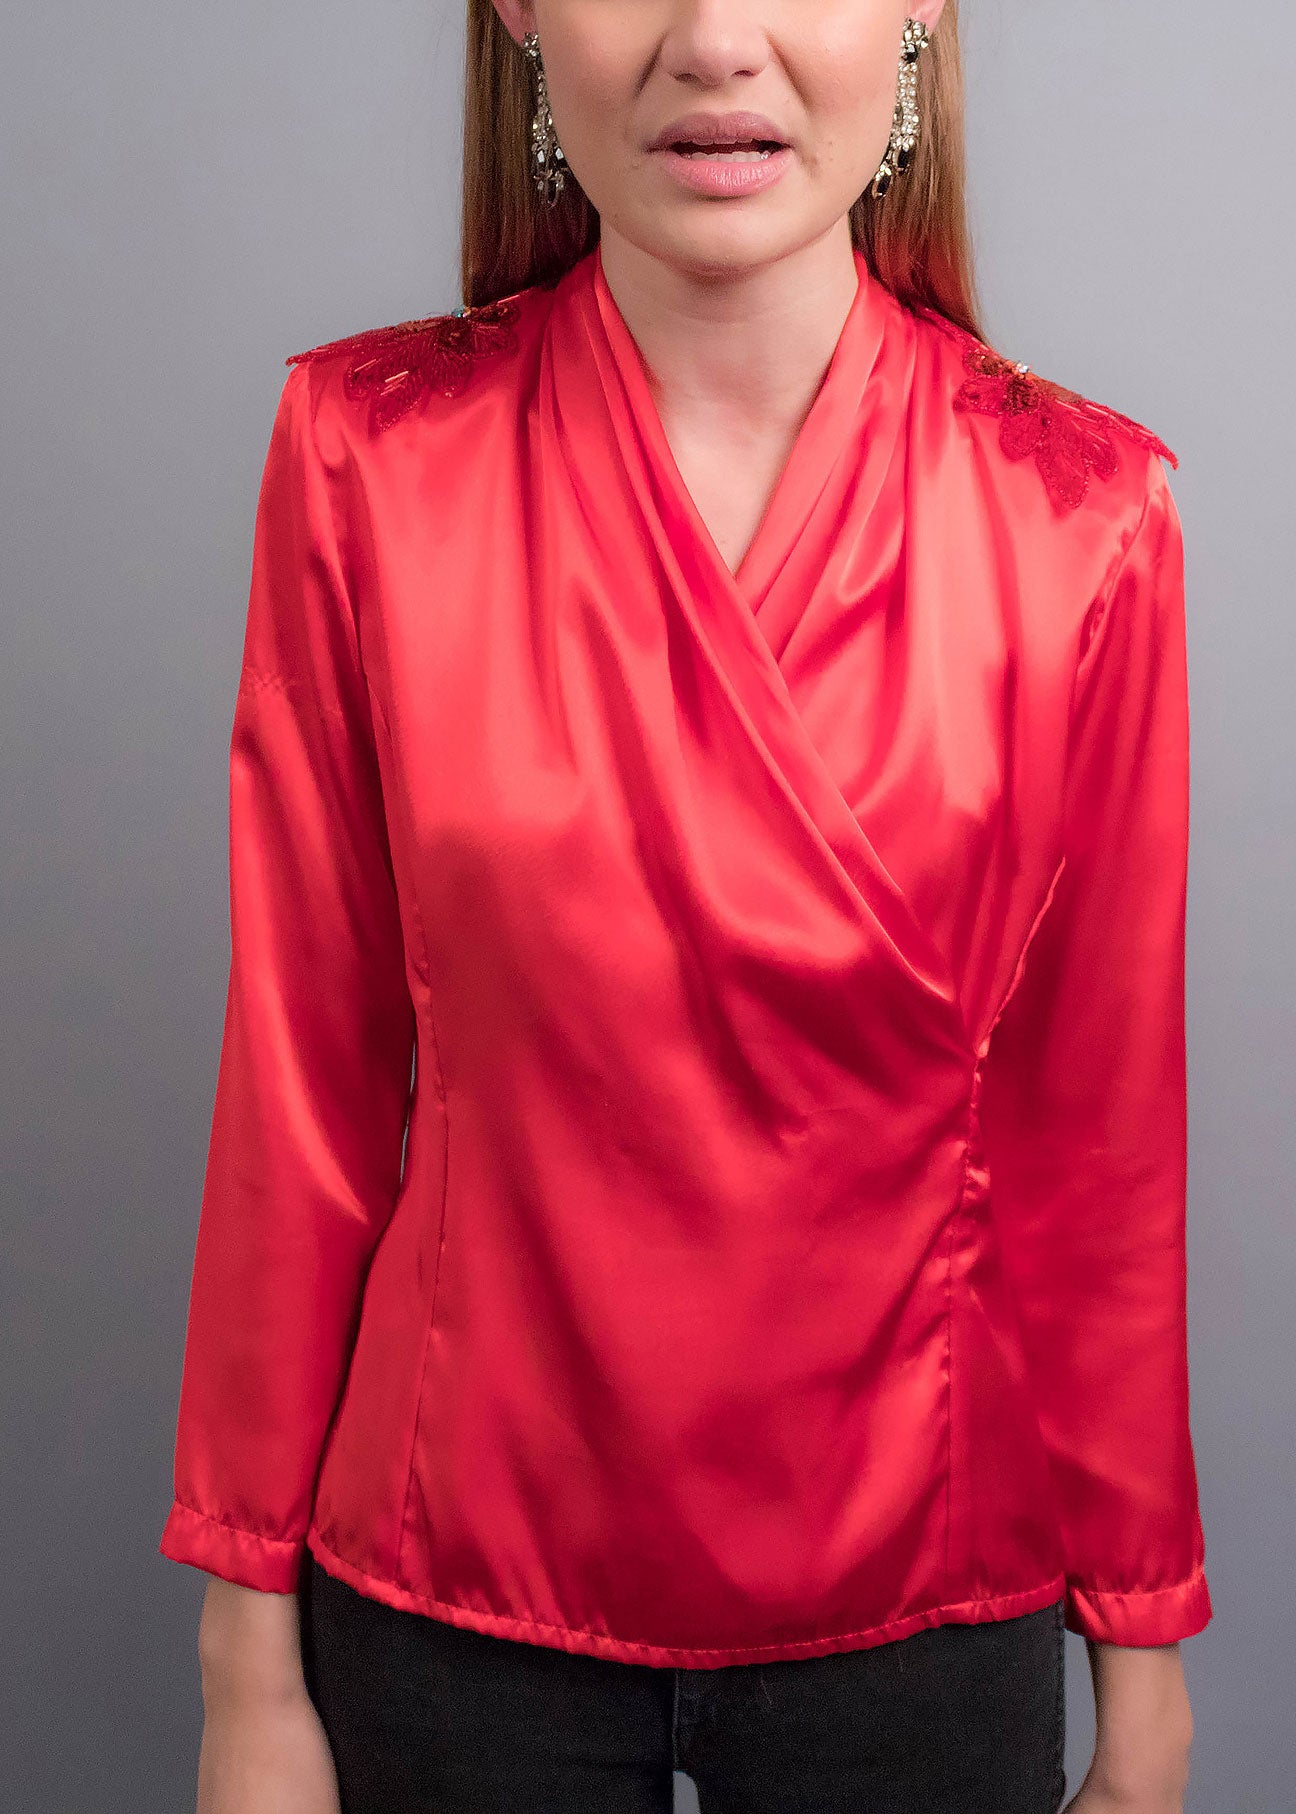 80s Sequins Shoulder Satin Blouse